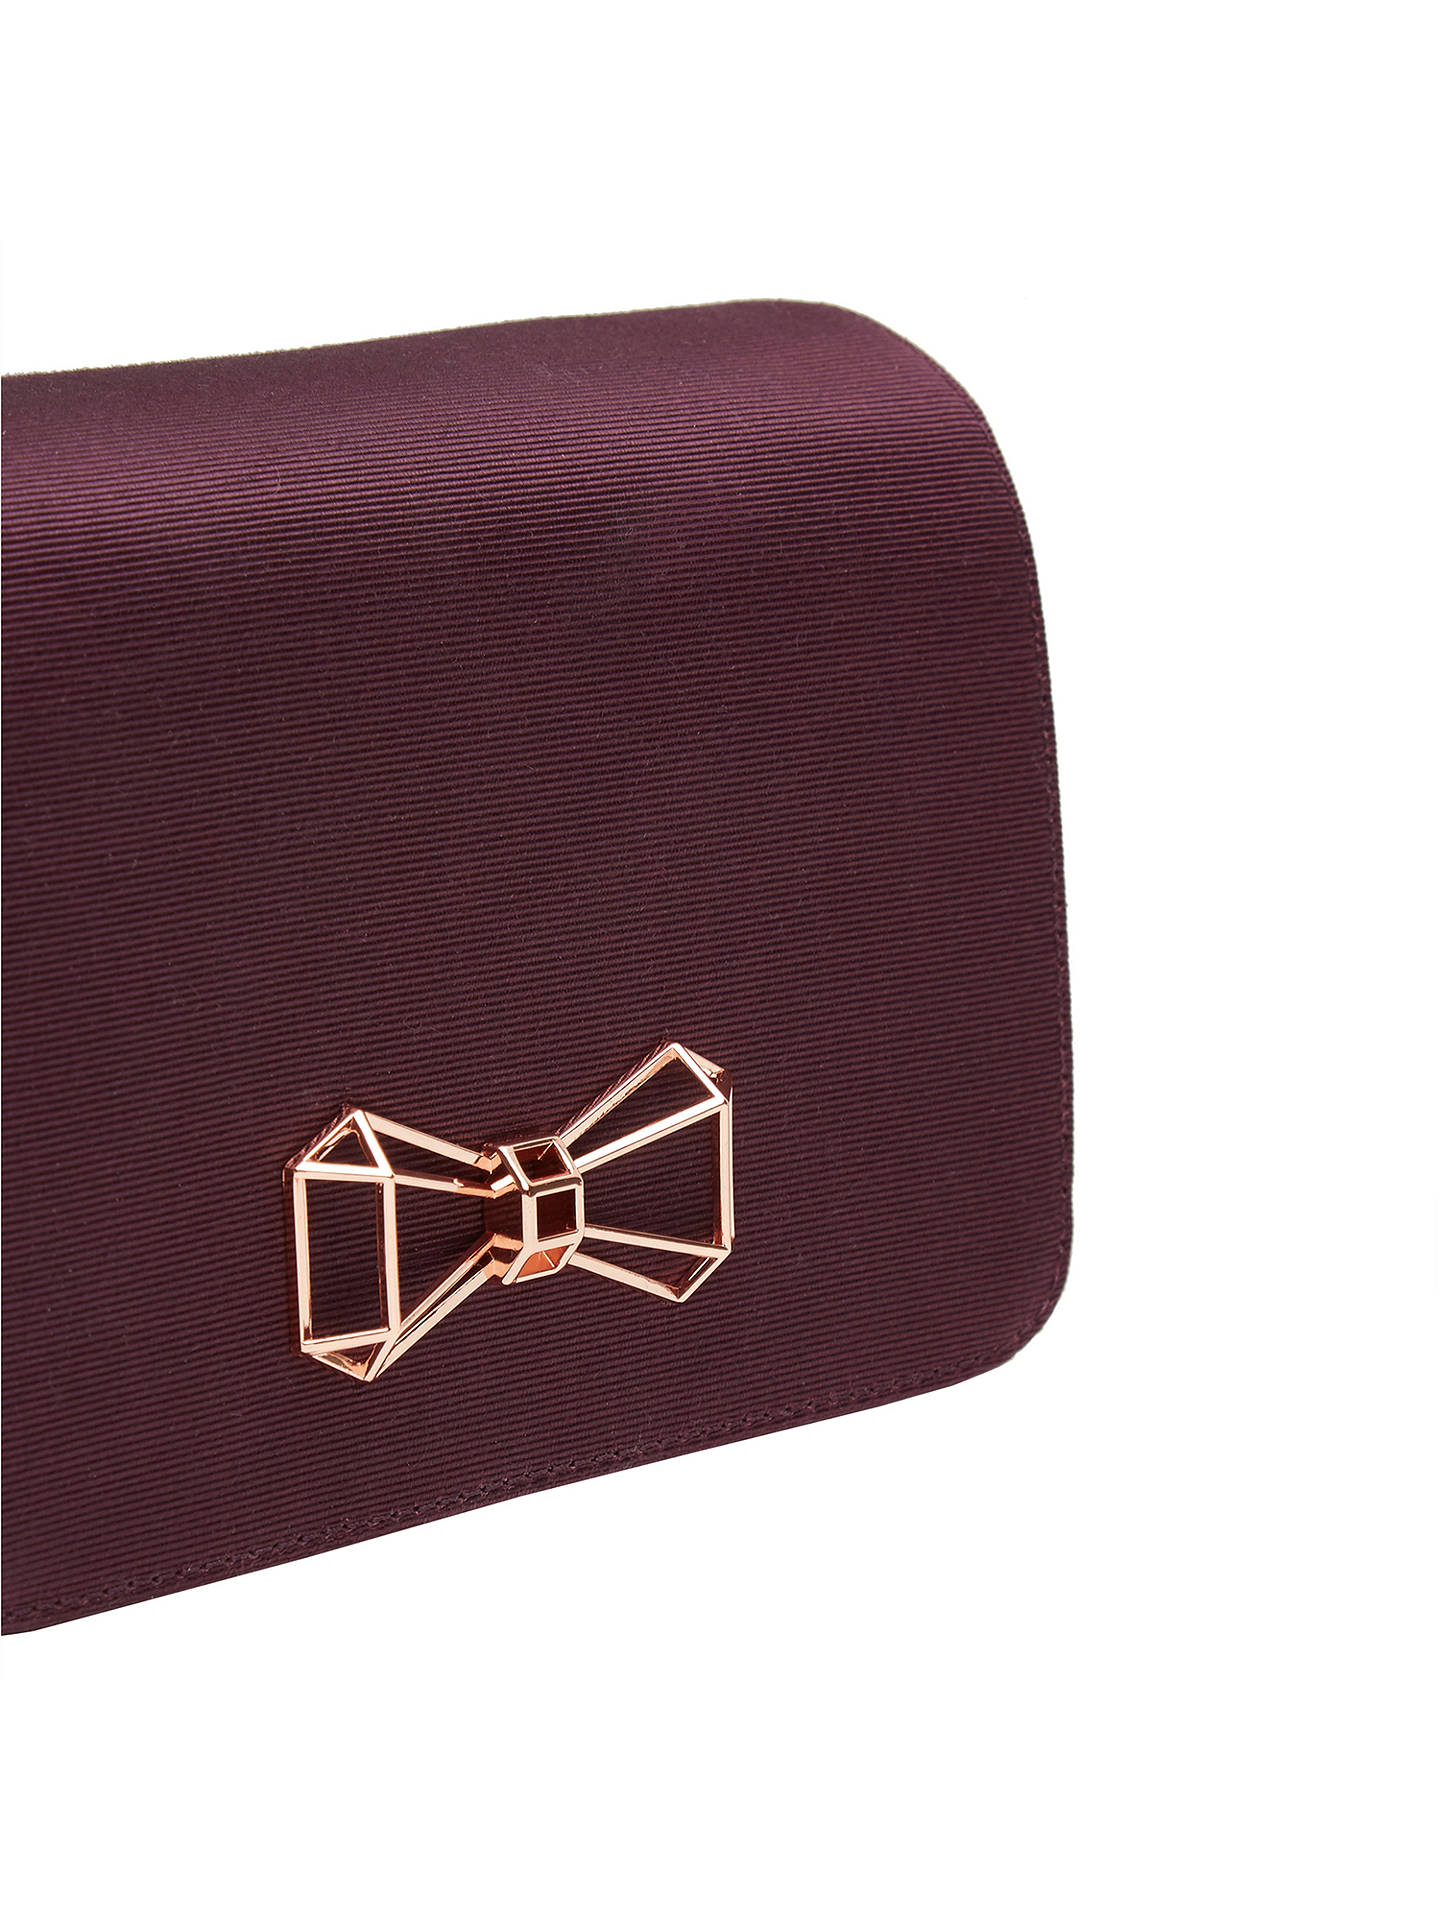 Ted Baker Michala Bow Clutch Bag at John Lewis & Partners